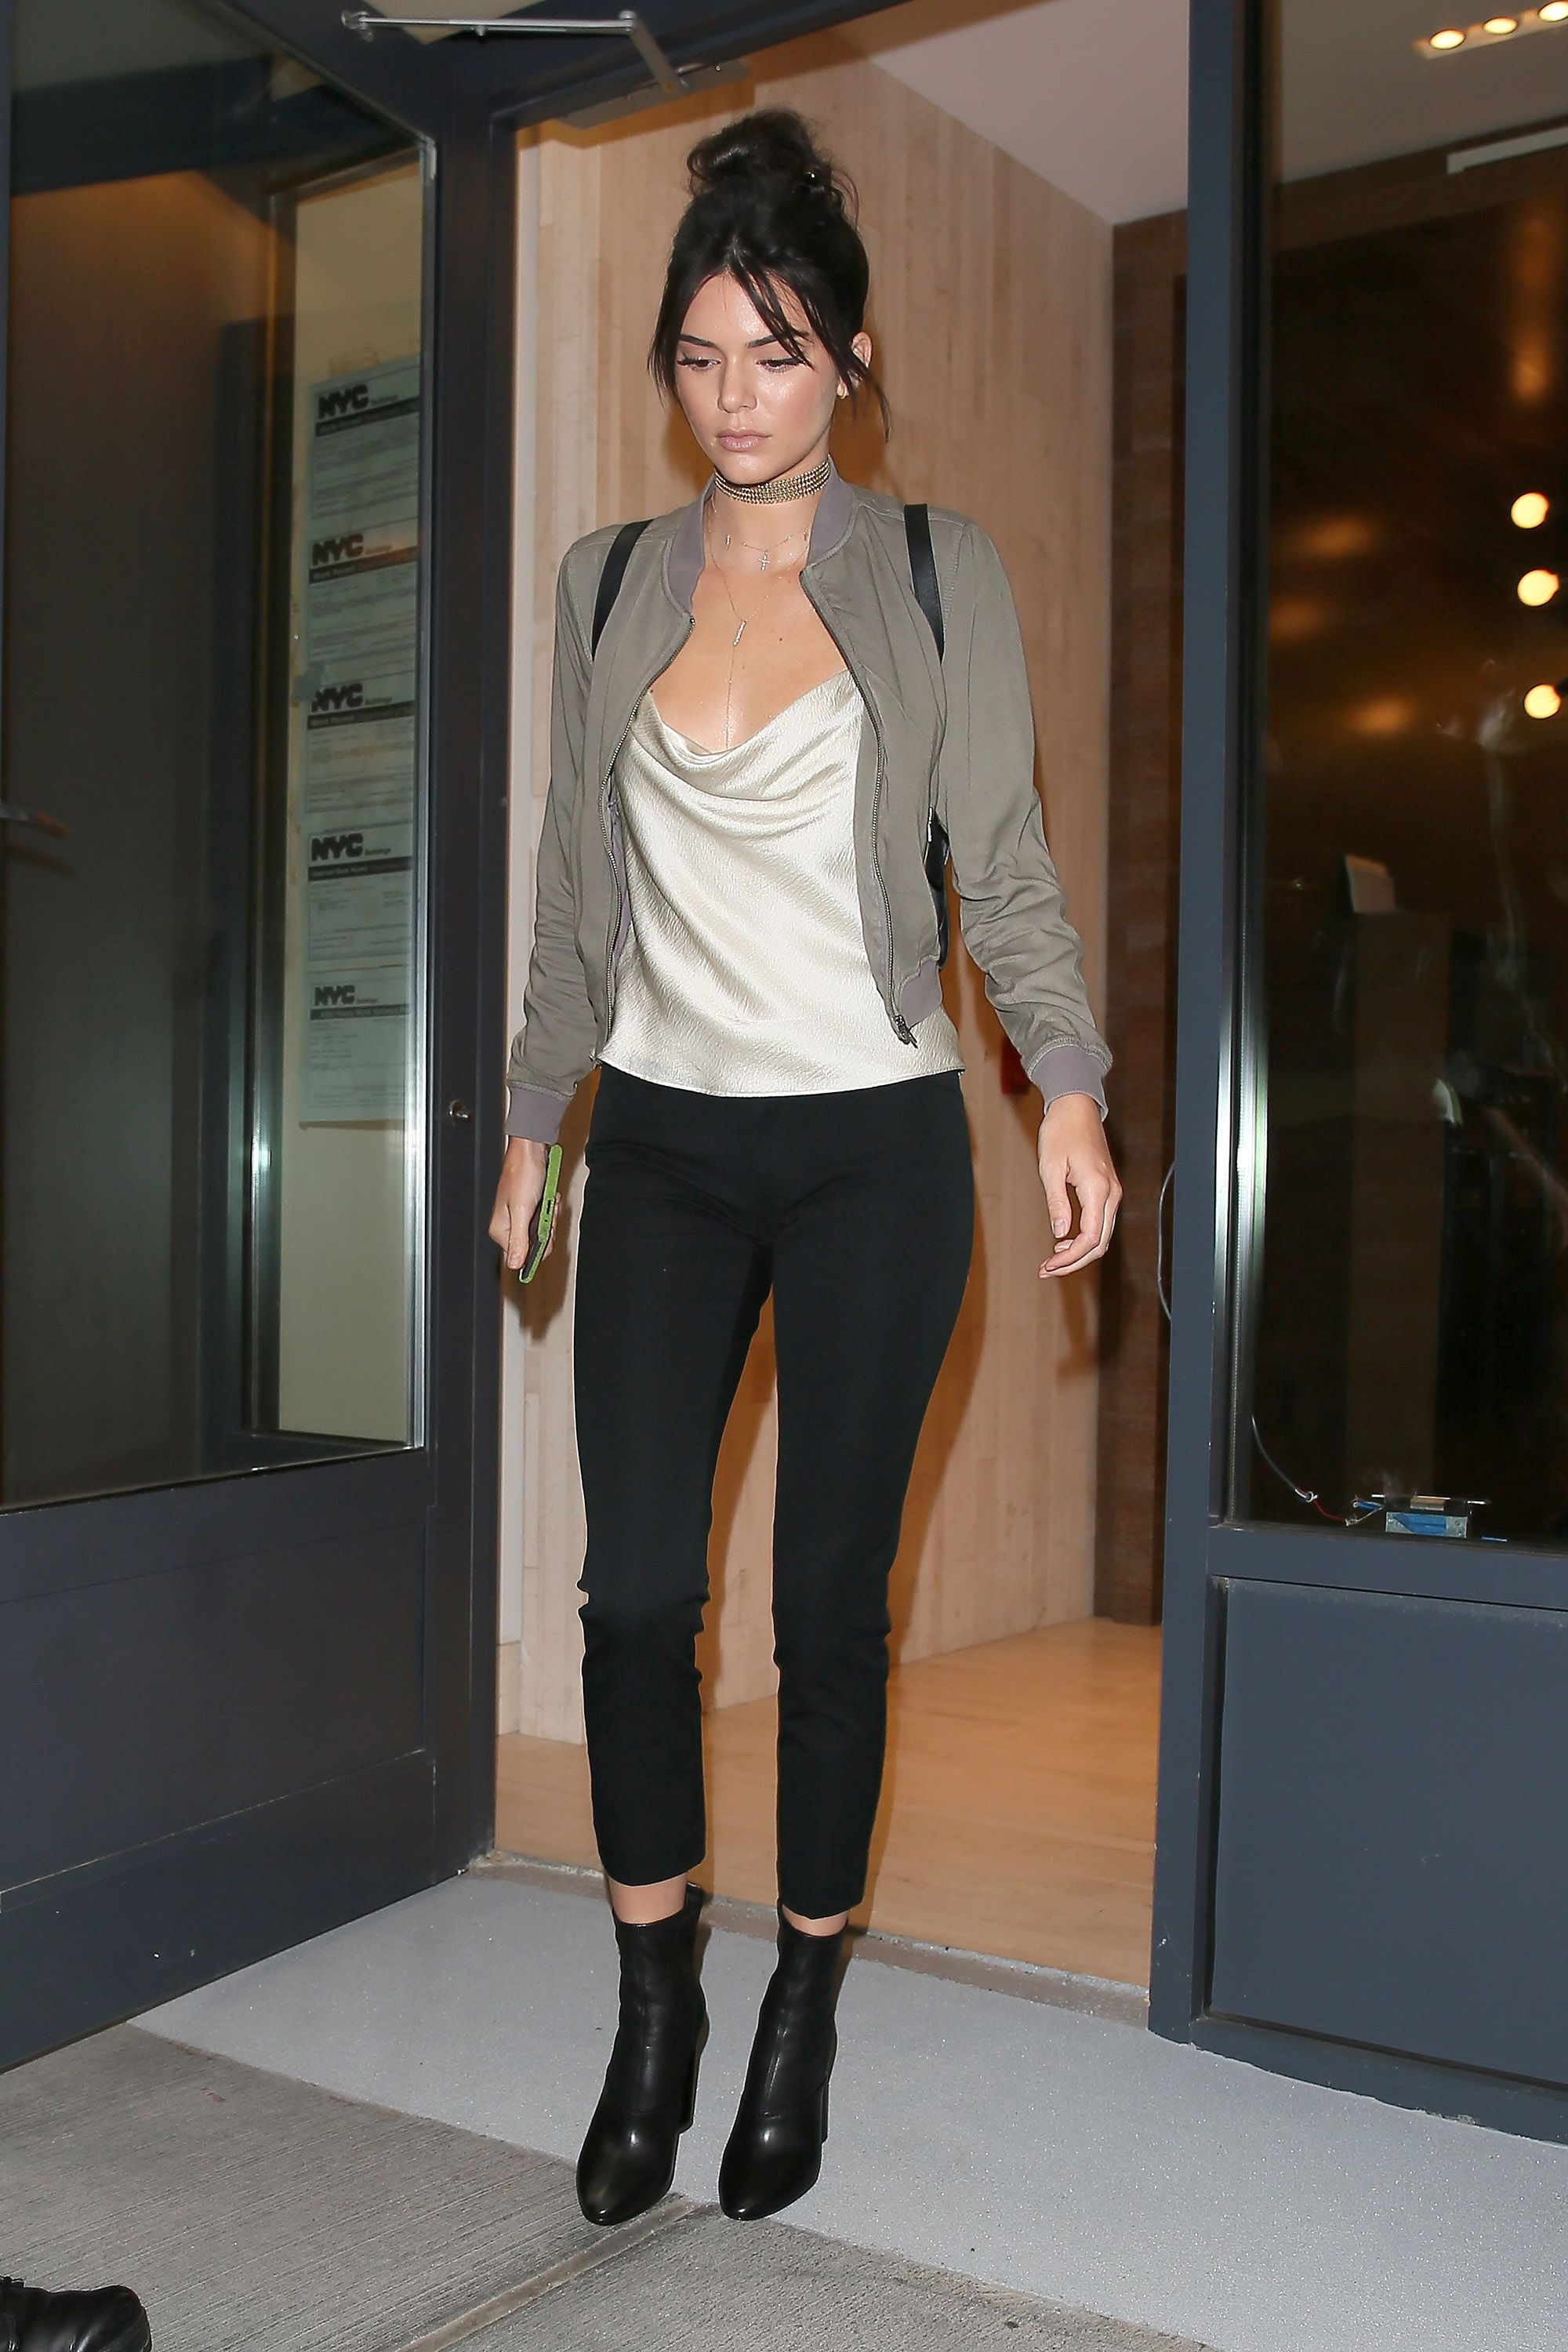 Kendall Jenner 39 S Just Rocked The Chicest Groutfit Grey Bomber Jacket Nili Lotan And September